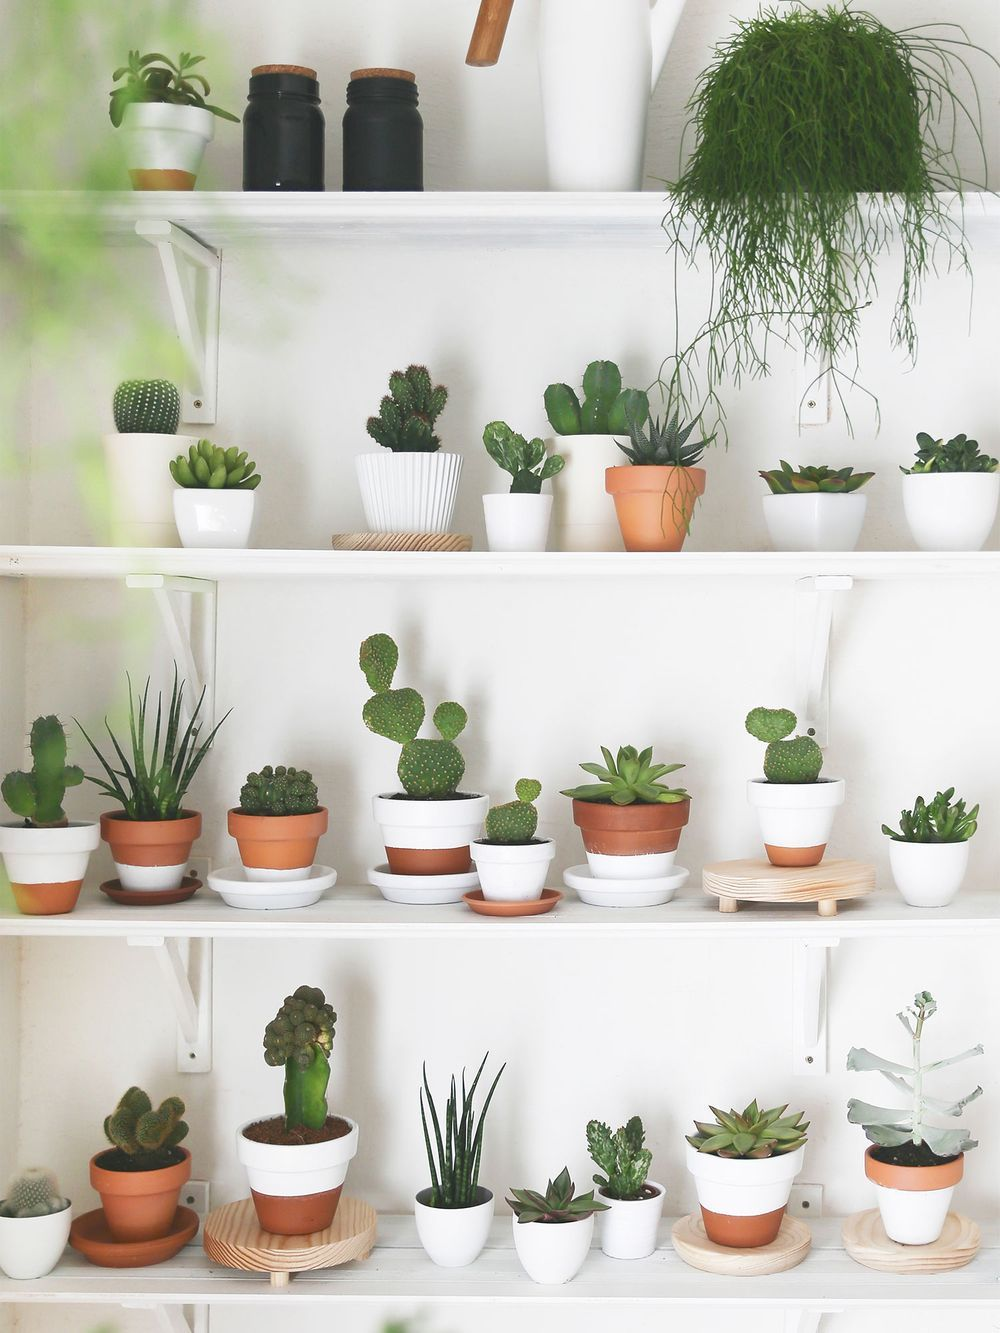 How to Style Cactus in the Home